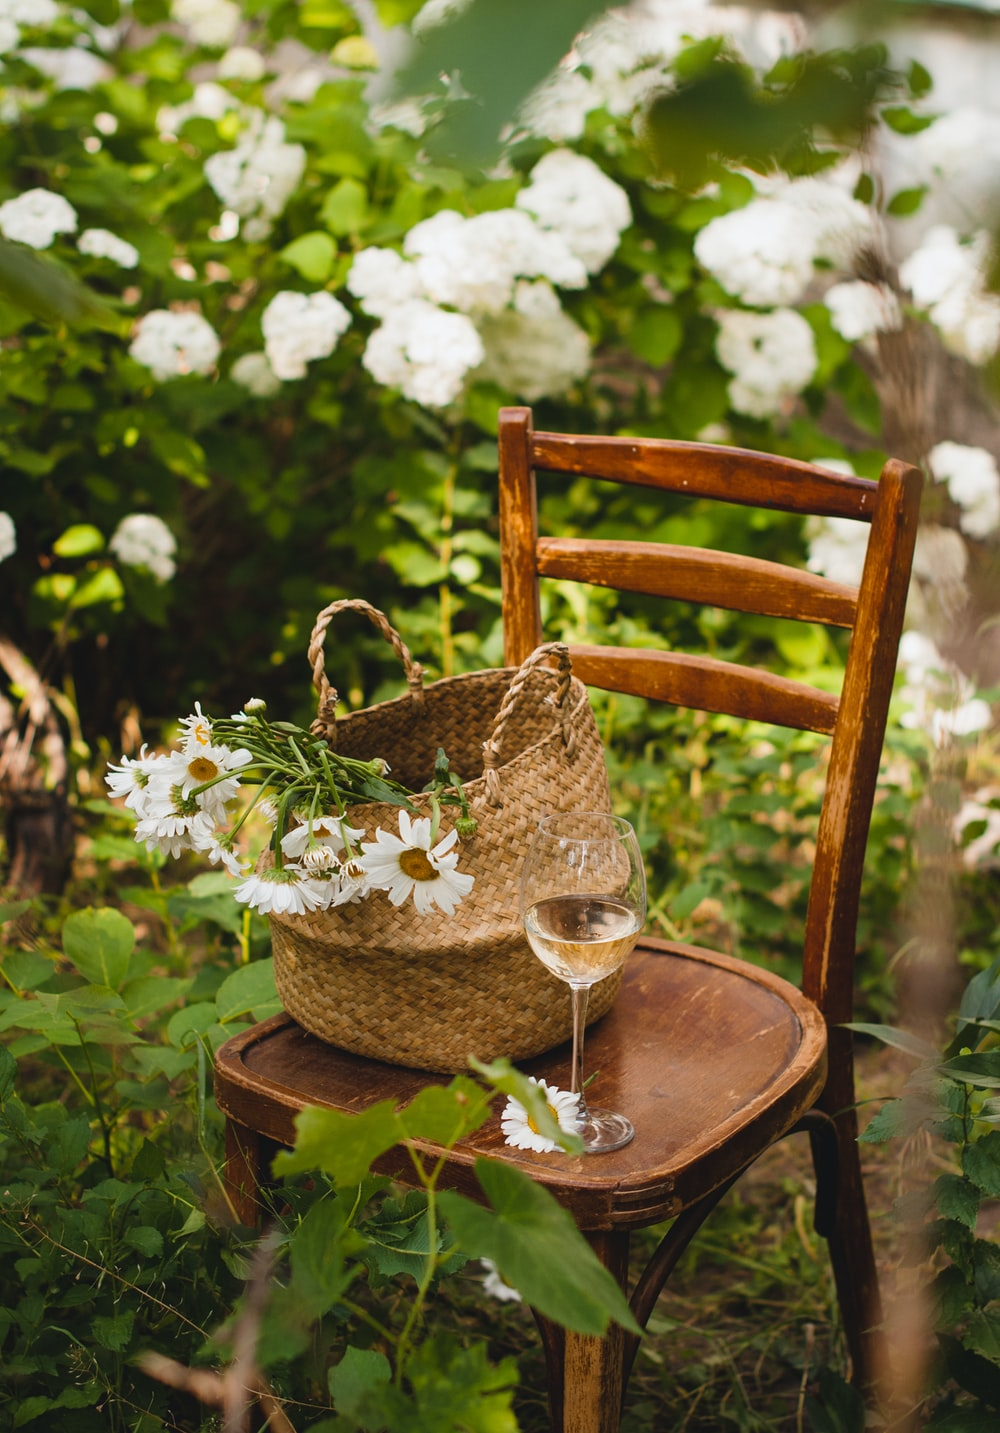 white flowers in brown woven basket on brown wooden table